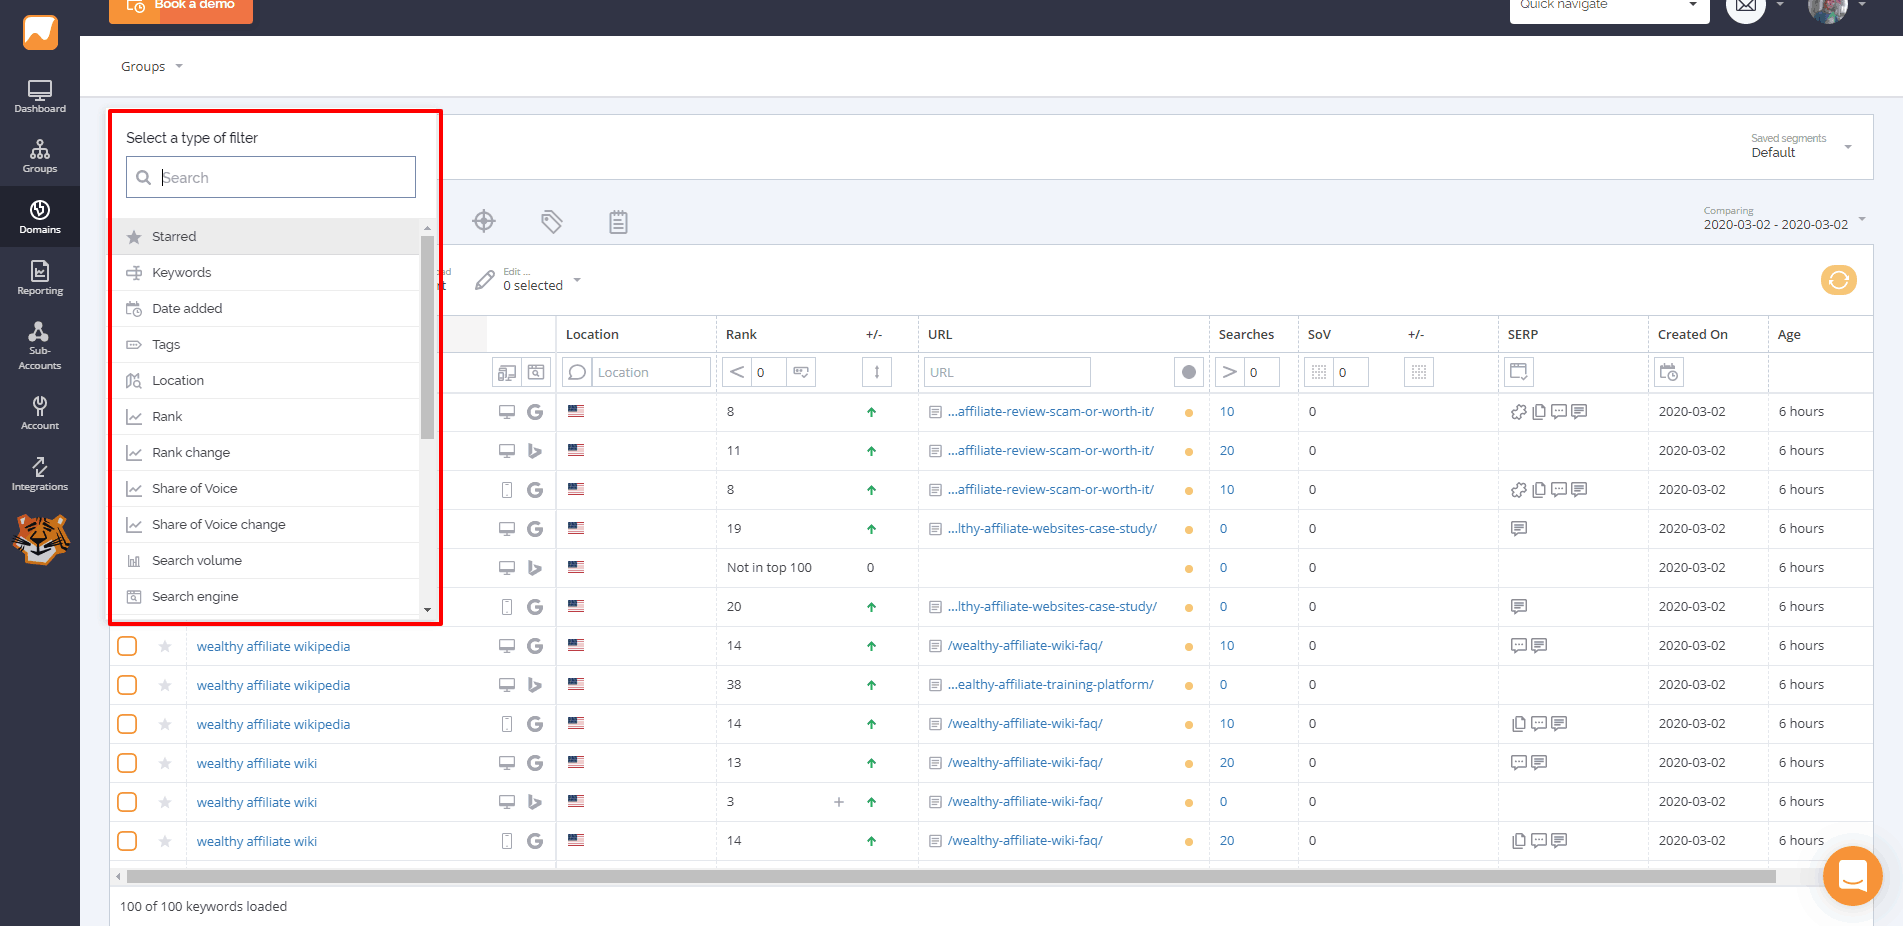 Keyword filtering with AccuRanker